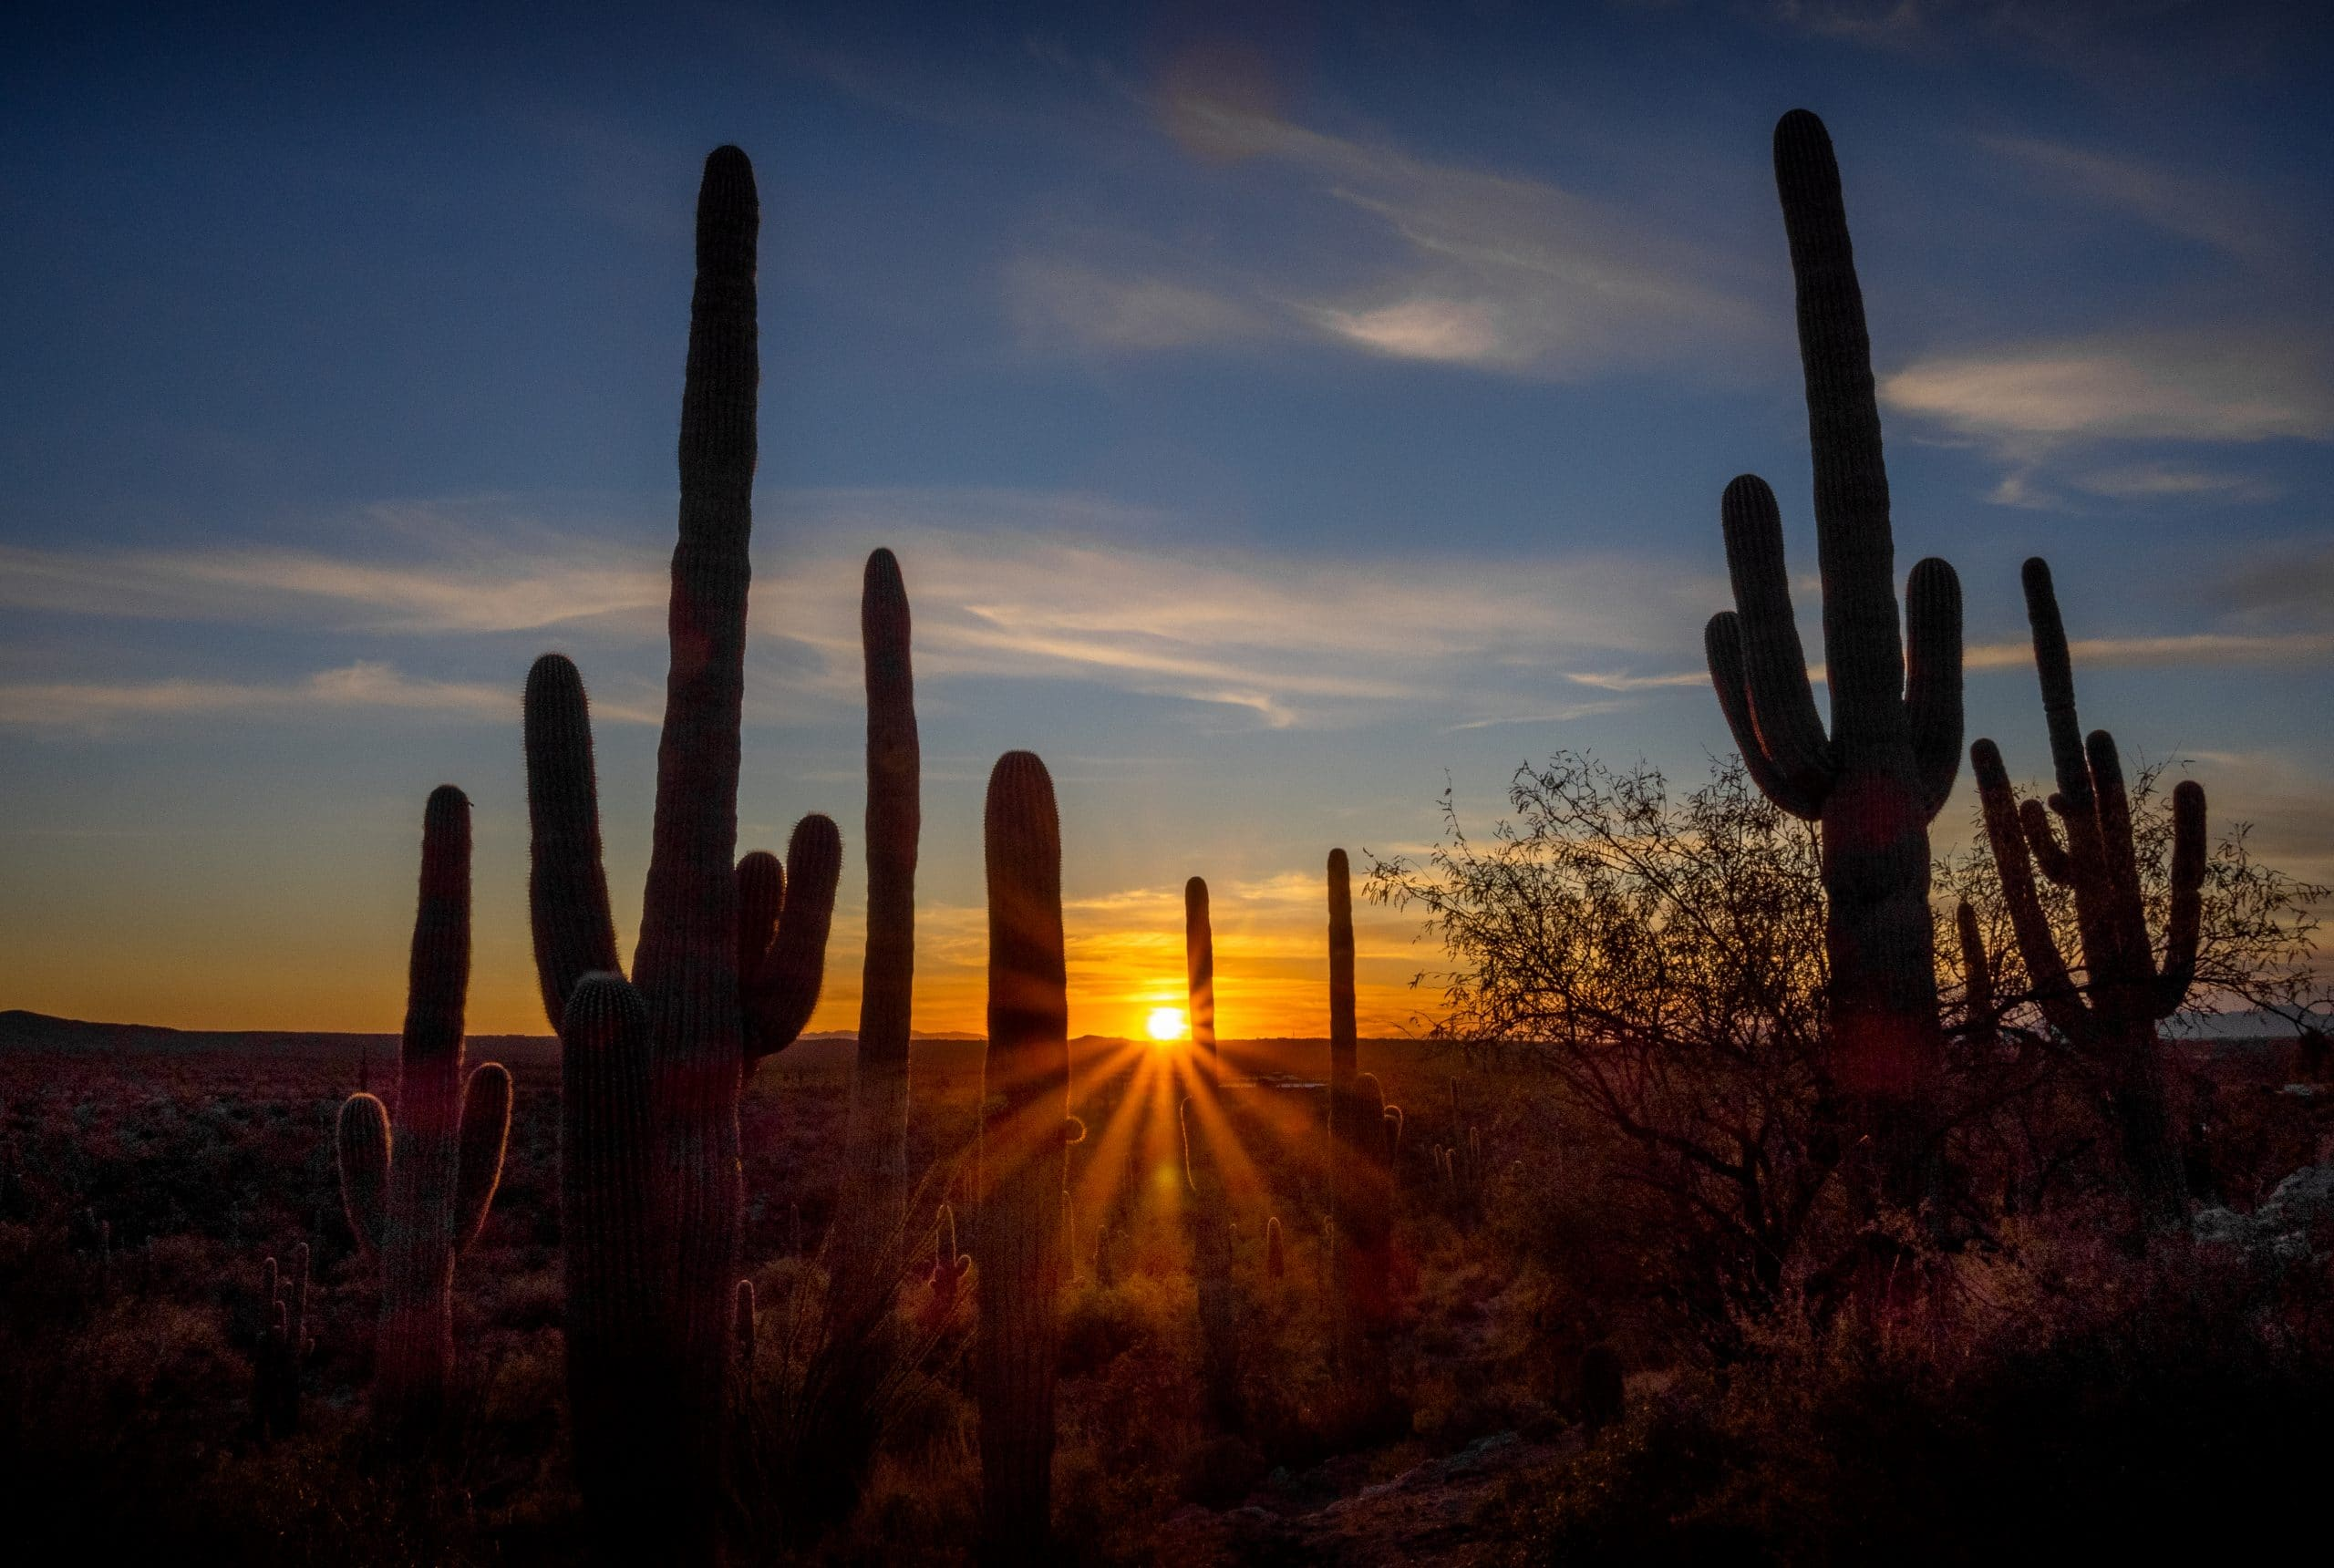 Sunset at the Tanque Verde Ranch